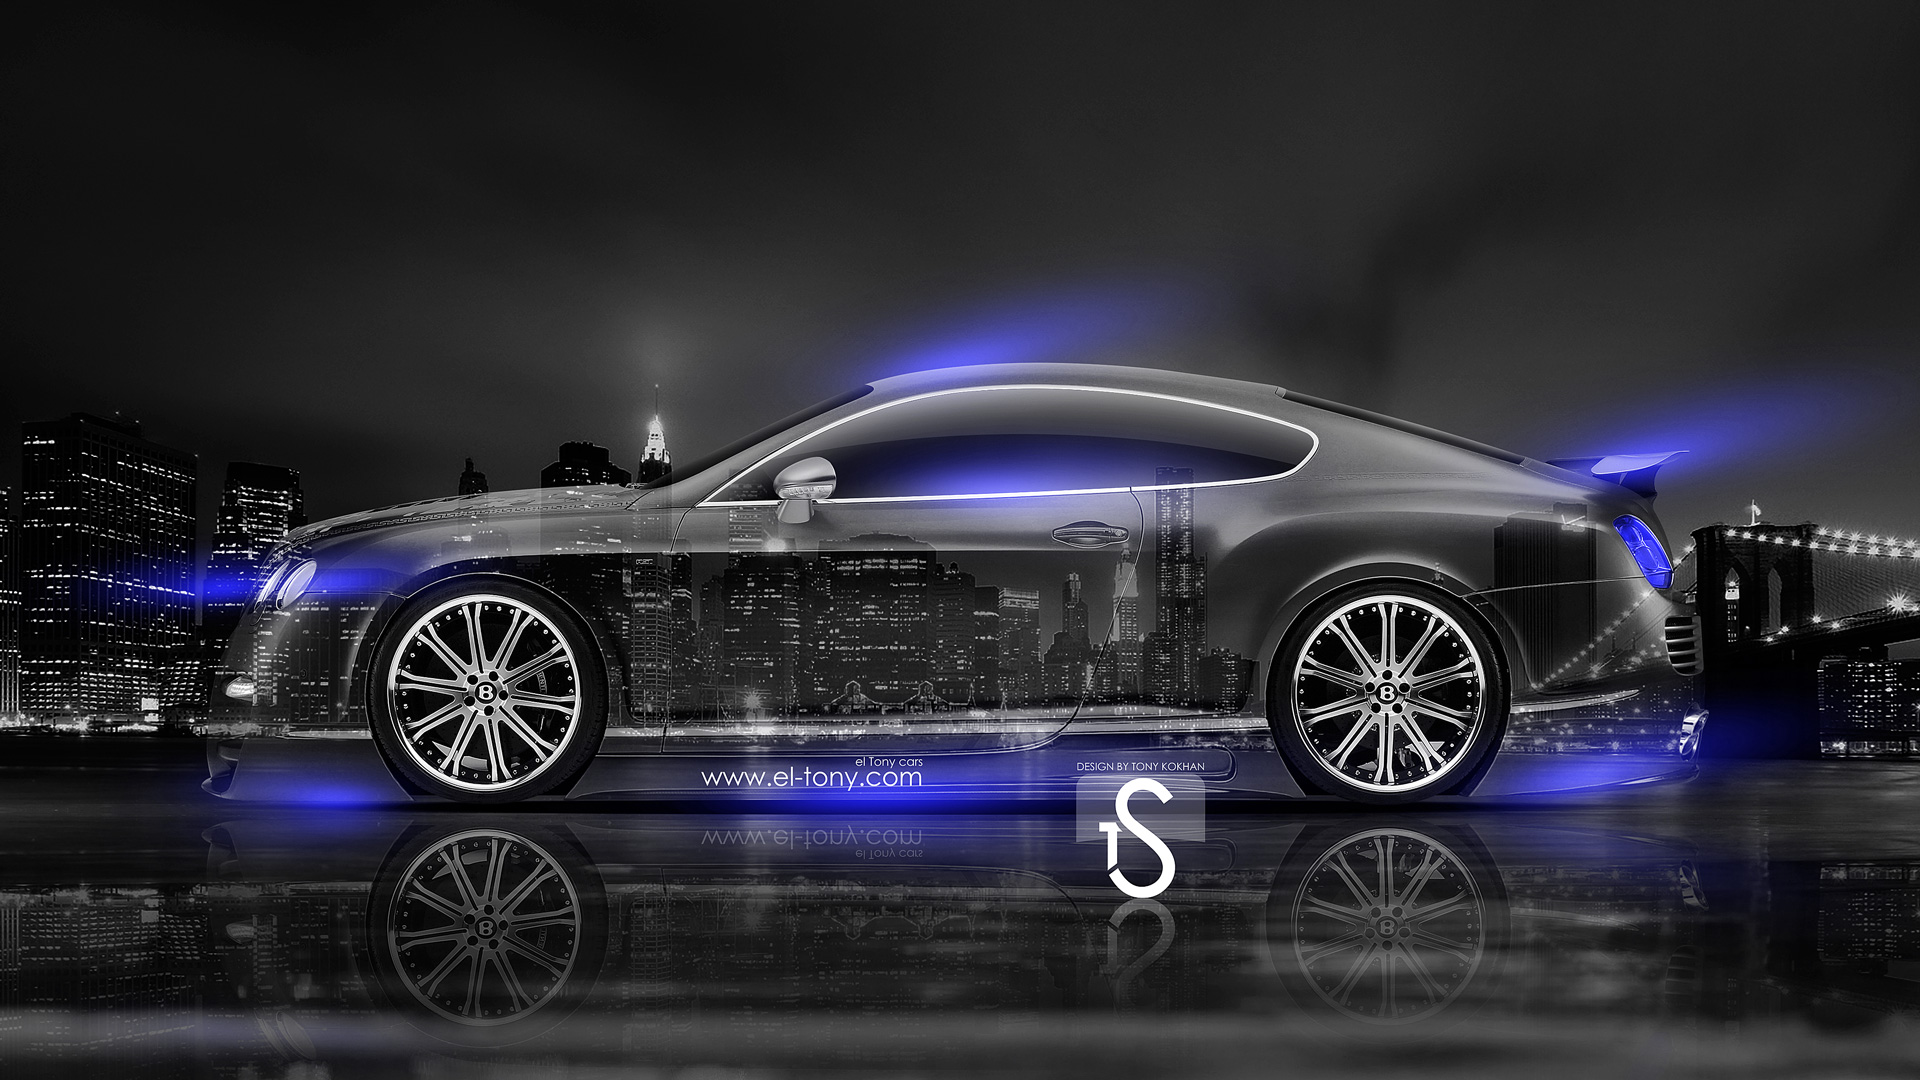 3d Smoke Wallpaper Bentley Continental Gt Crystal City Car 2014 El Tony